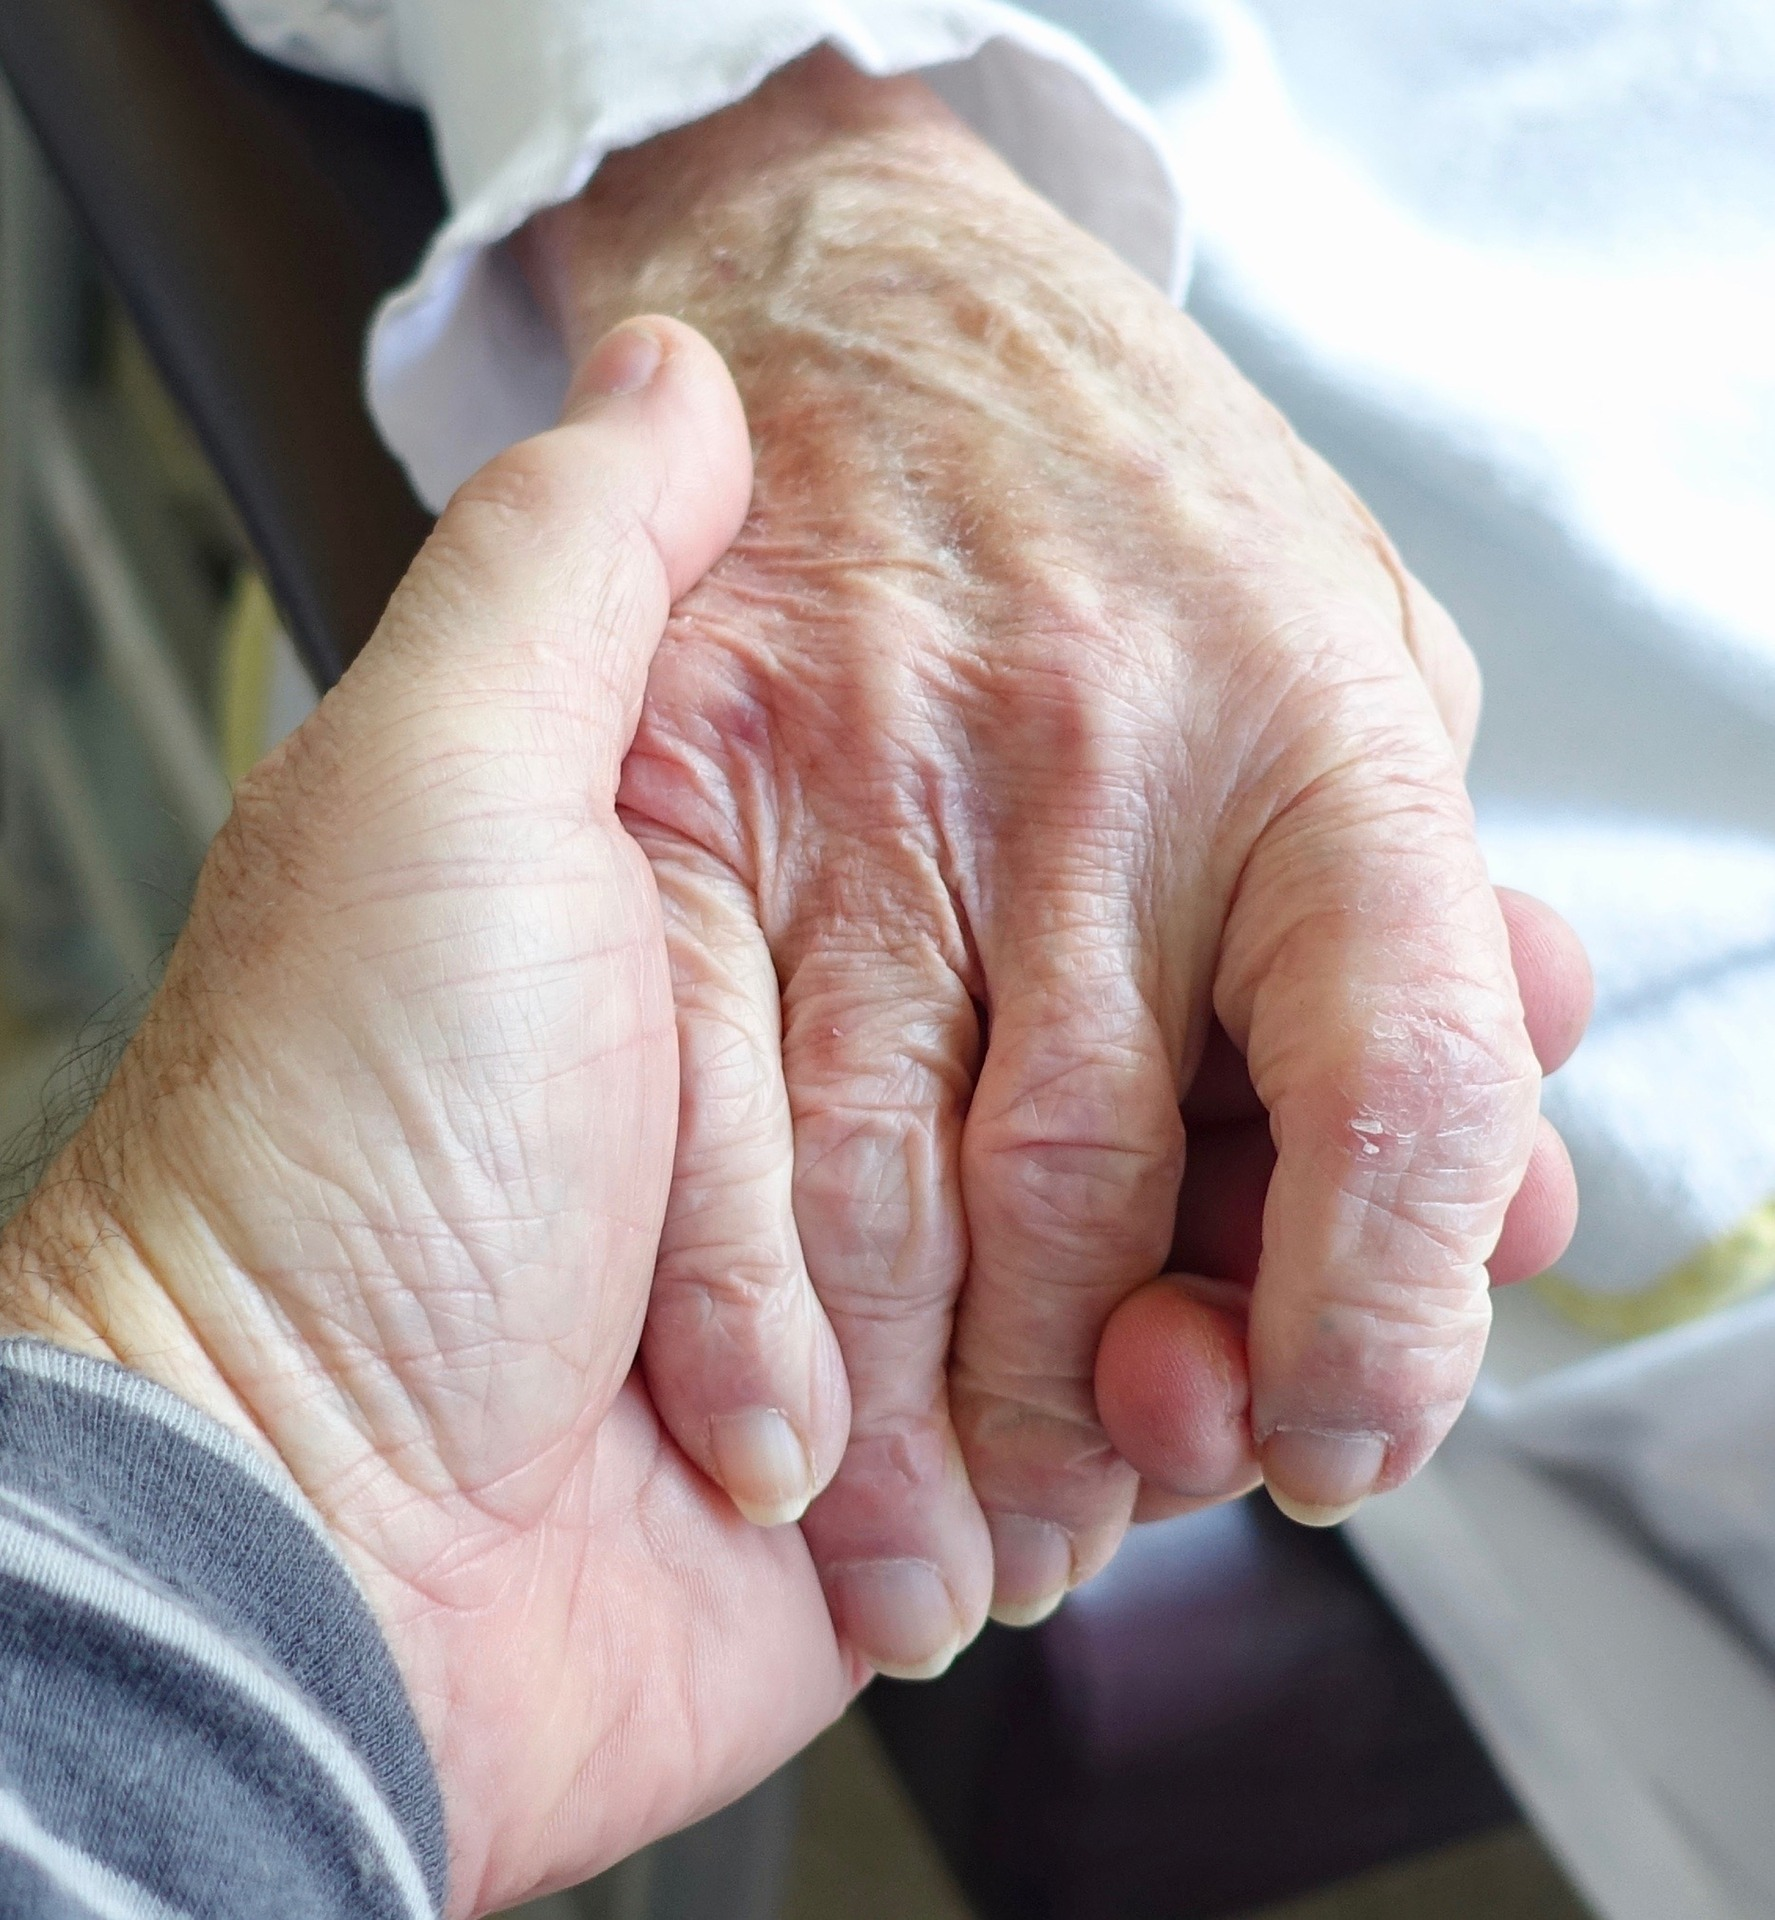 https://pixabay.com/en/hand-aged-care-sympathy-senior-3699825/